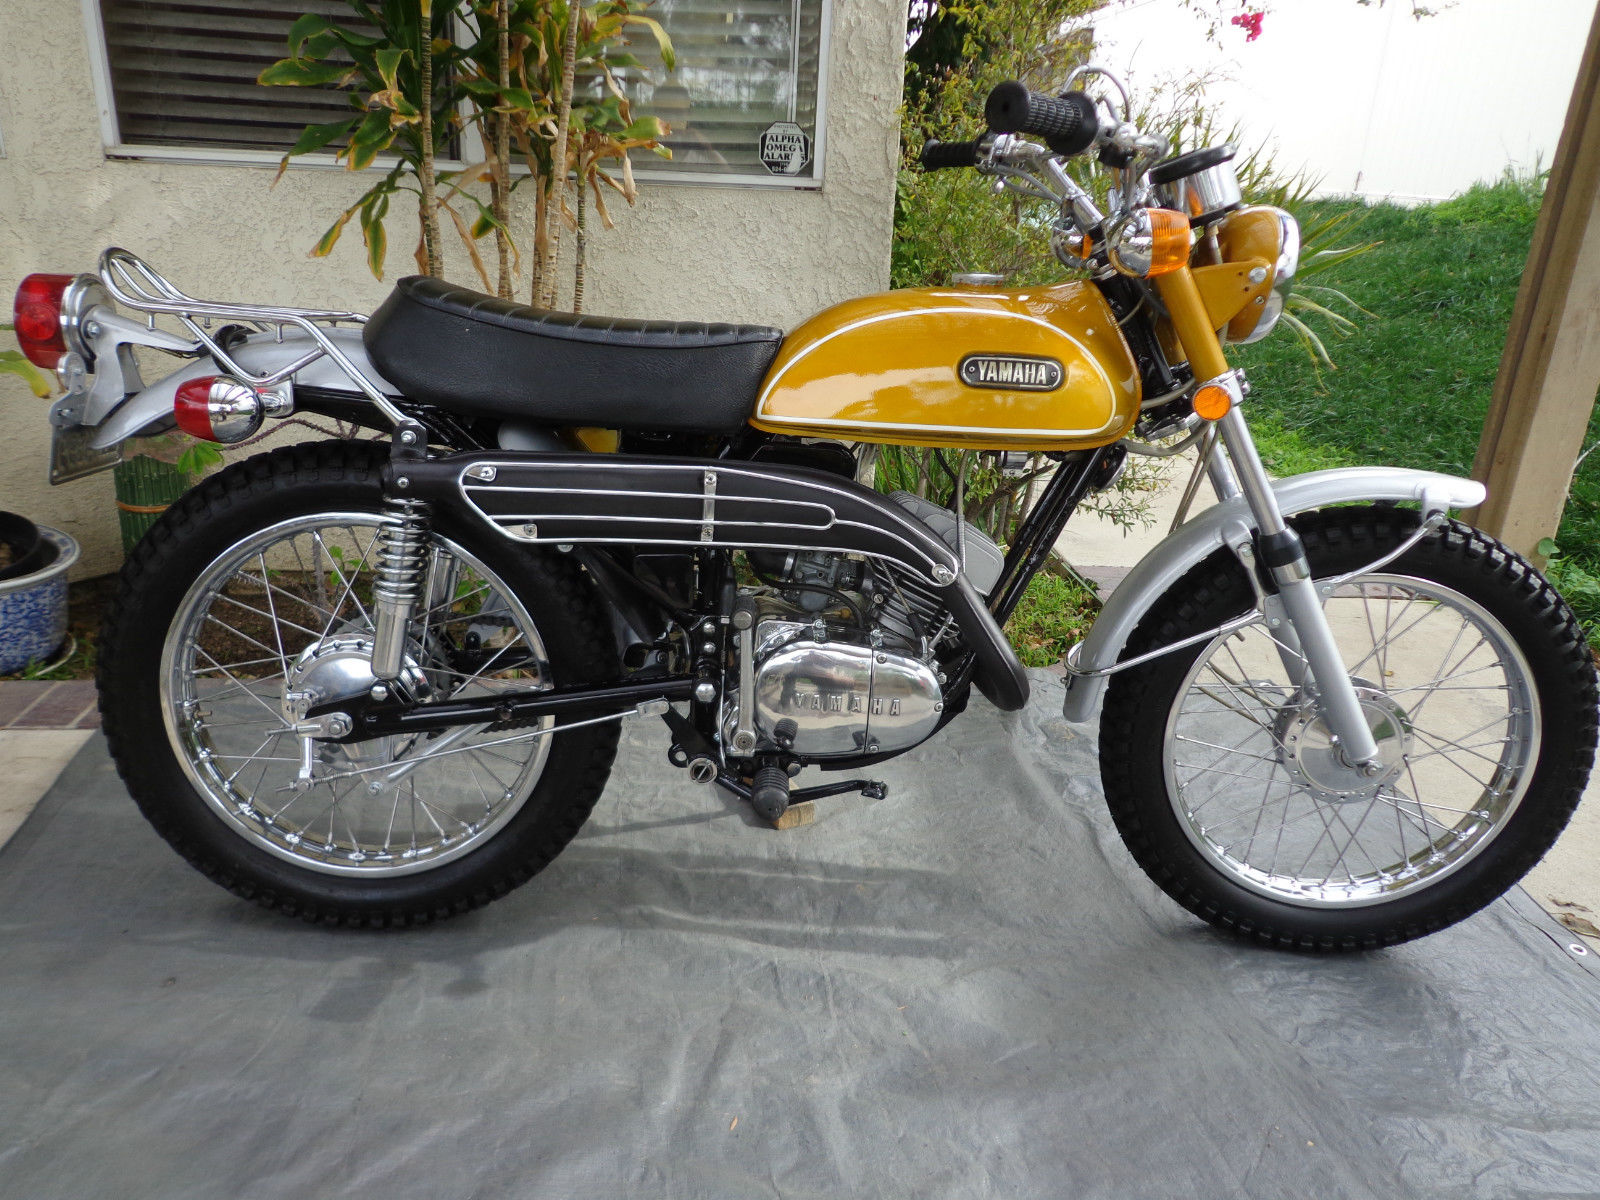 Yamaha CT1 175 Enduro - 1971 - Restored Classic Motorcycles